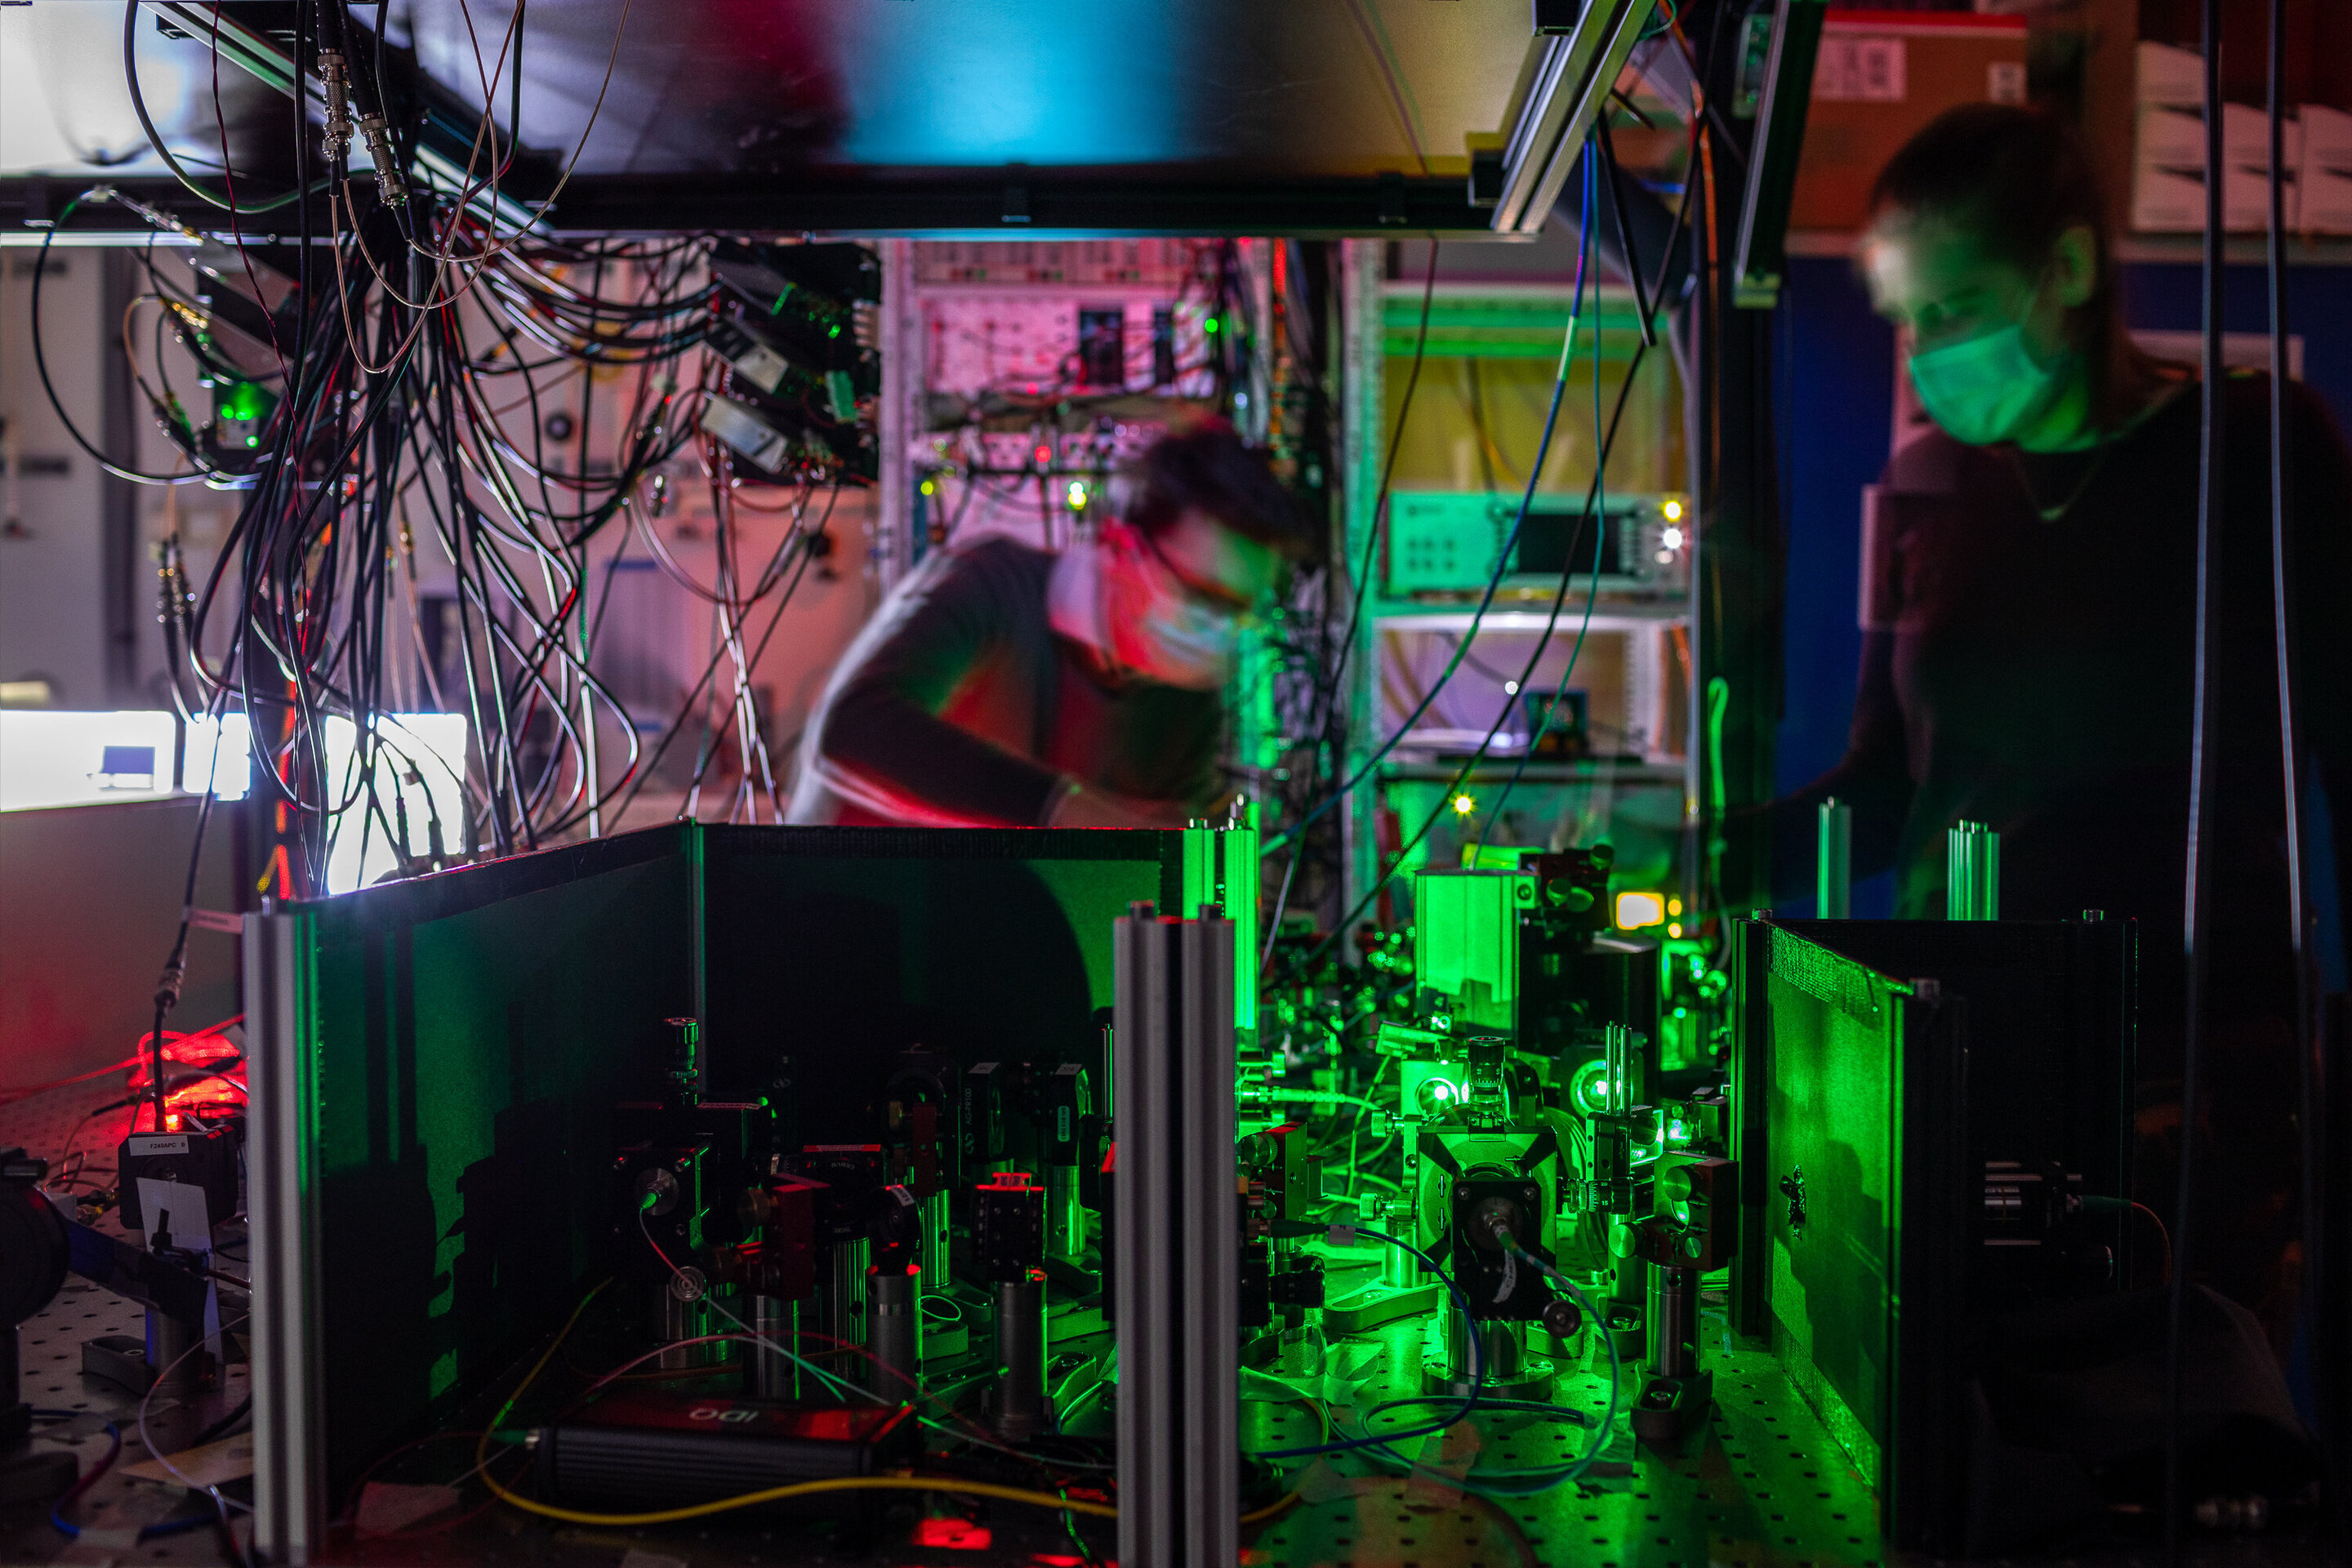 Researchers establish the first entanglement-based quantum network